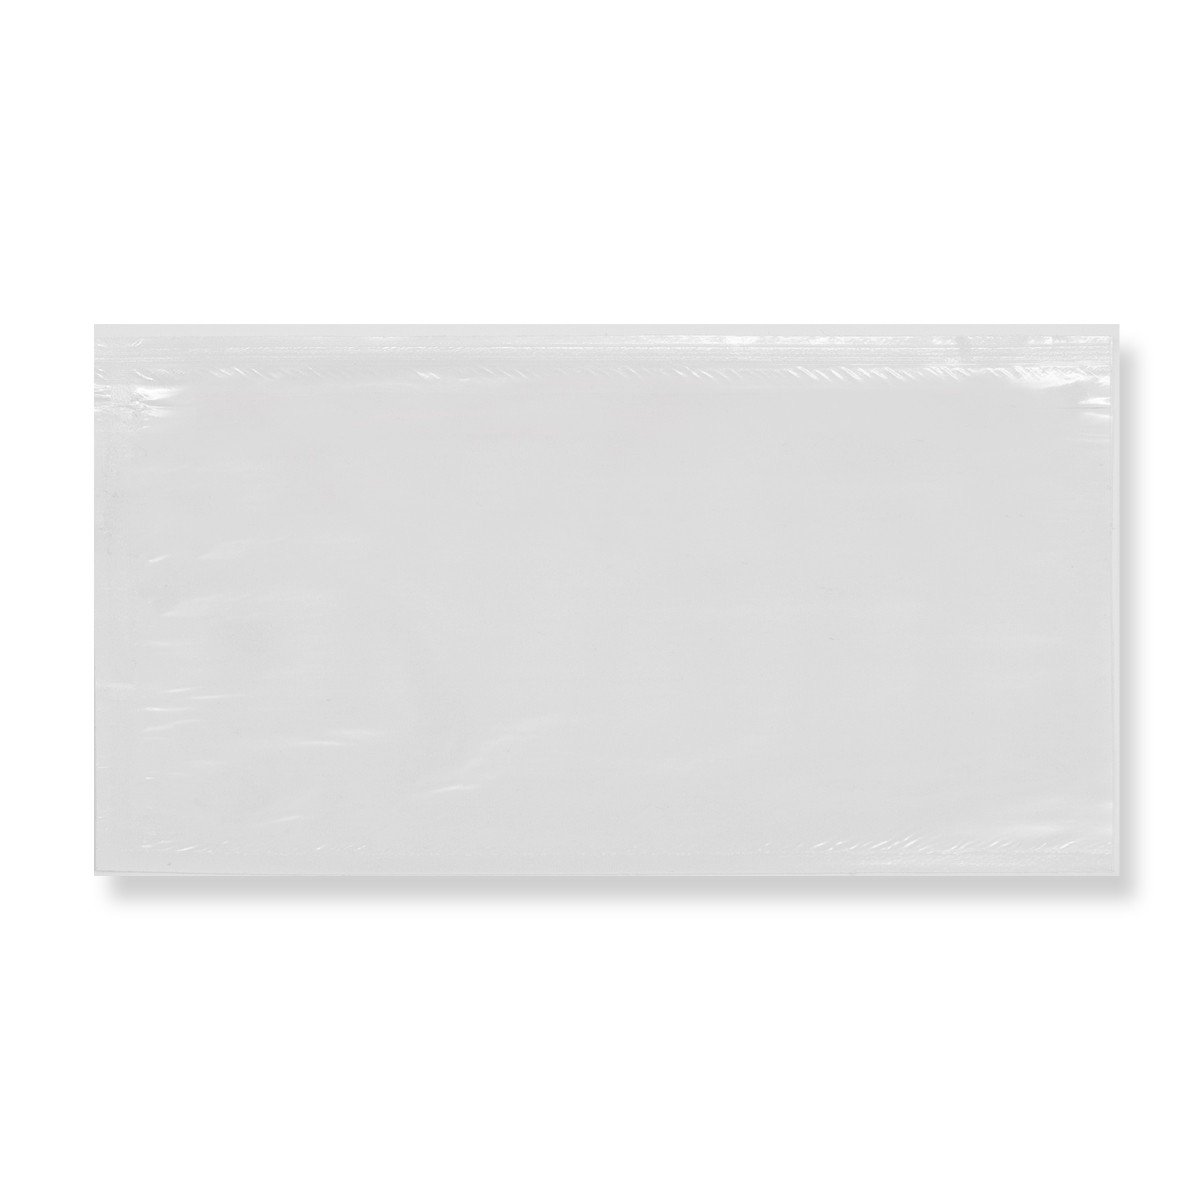 DL CLEAR DOCUMENTS ENCLOSED WALLETS (110 x 220mm)